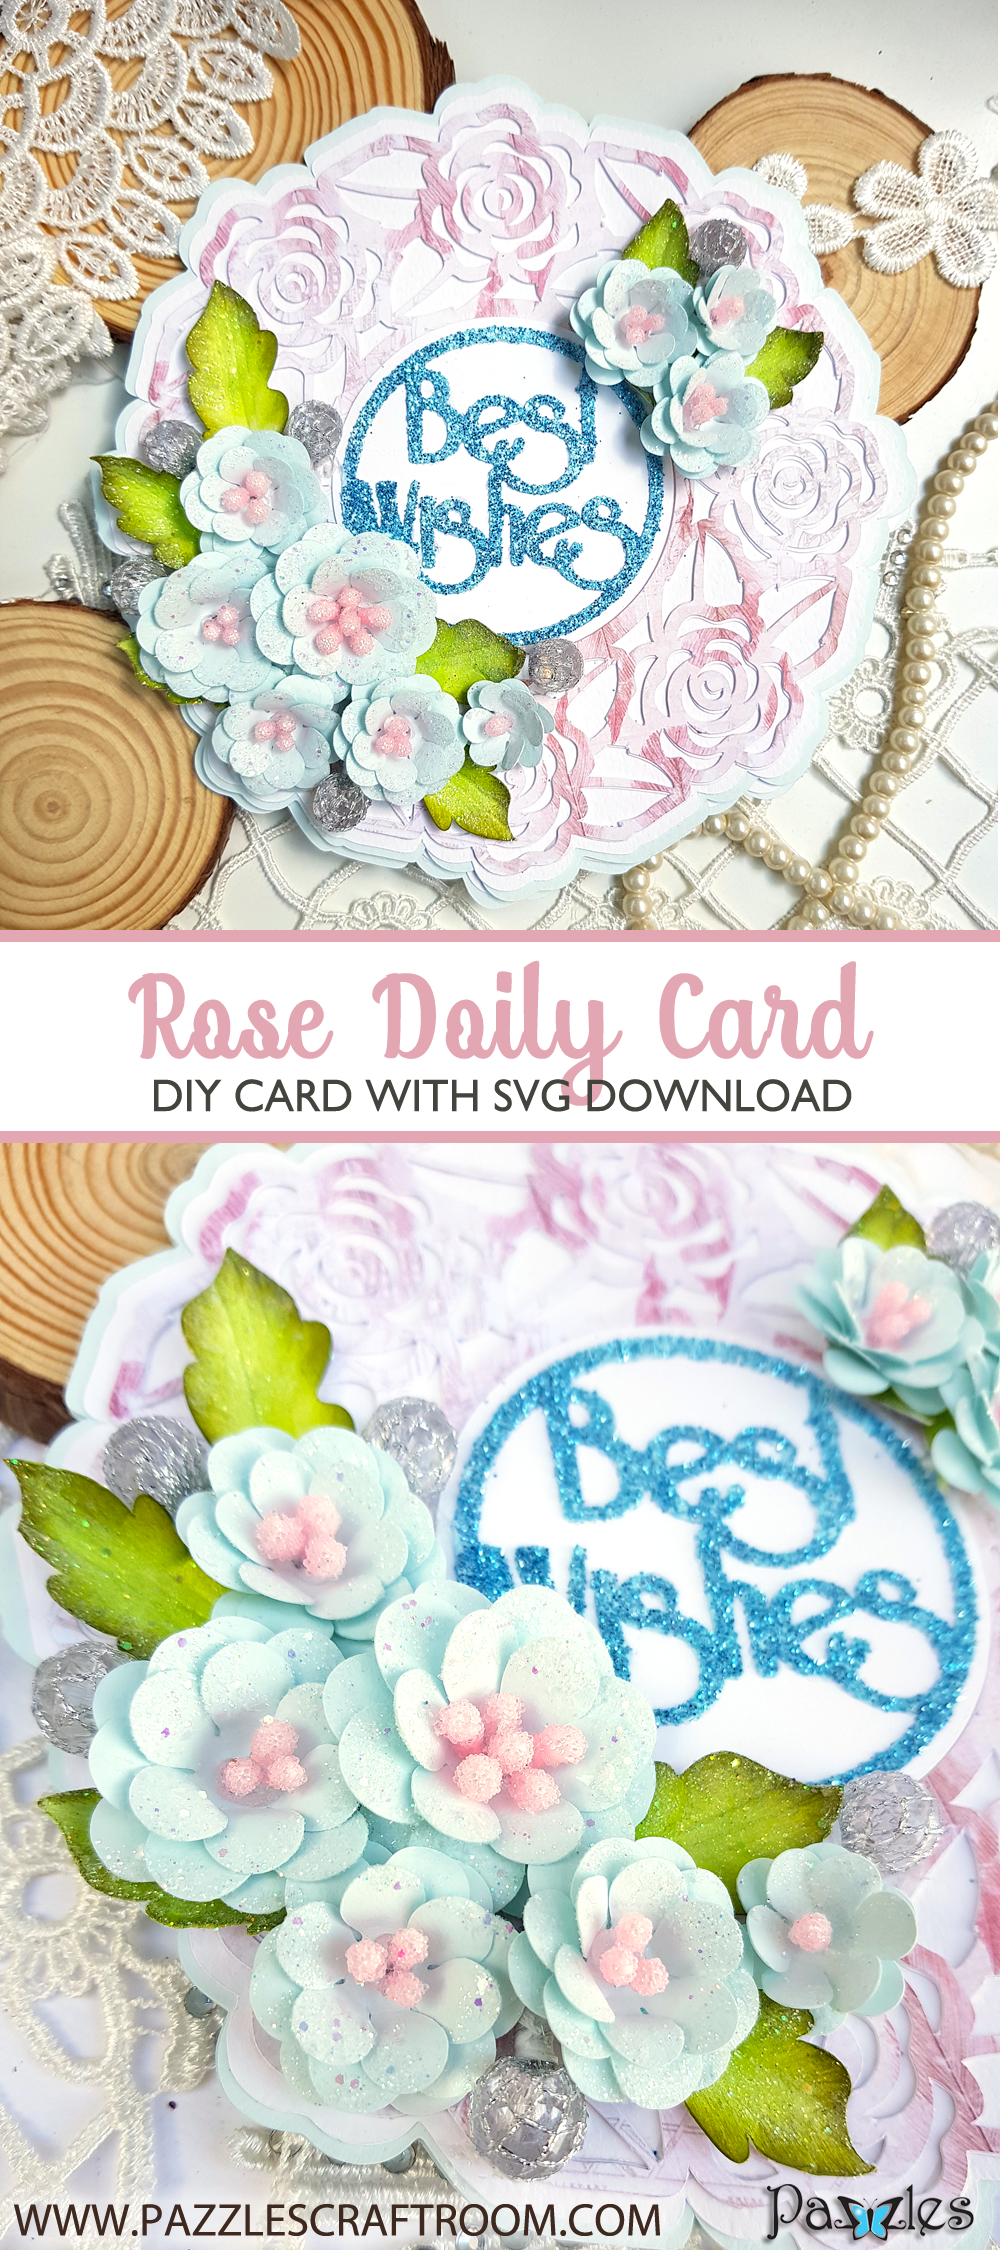 Pazzles DIY Rose Doily Card with instant SVG download. Compatible with all major electronic cutters including Pazzles Inspiration, Cricut, and Silhouette Cameo. Design by Nida Tanweer.